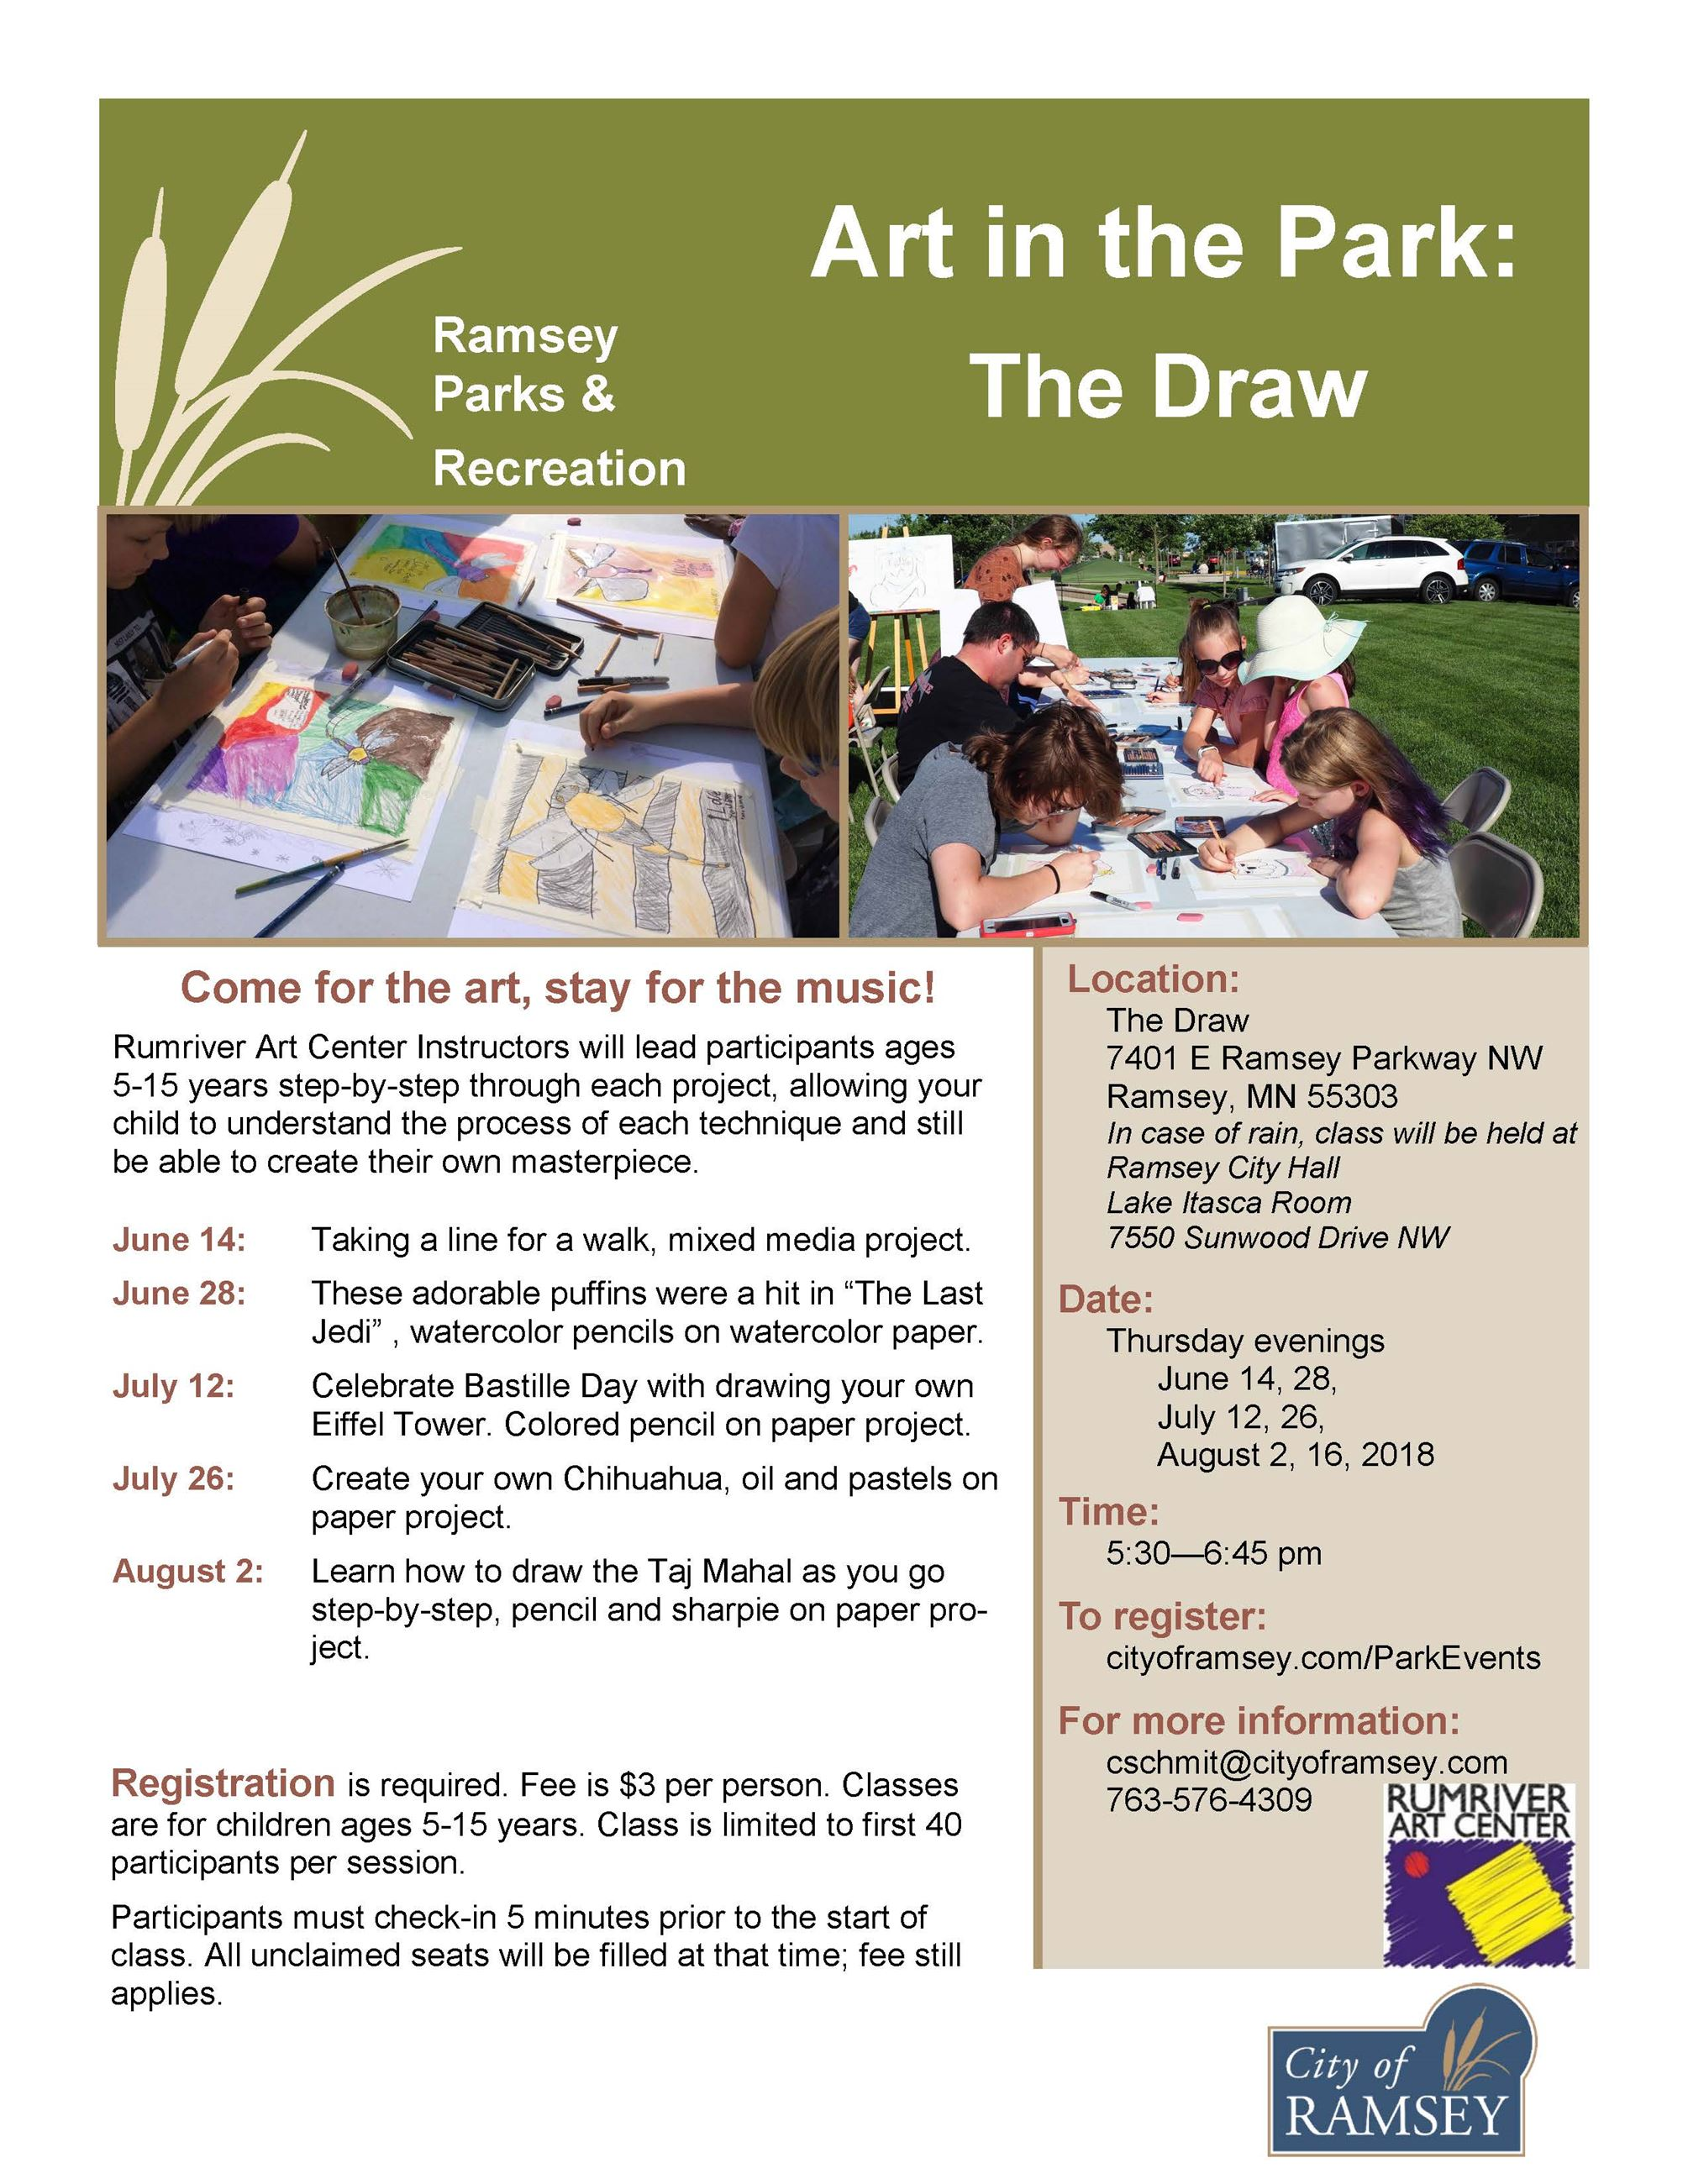 Art in the Park The Draw